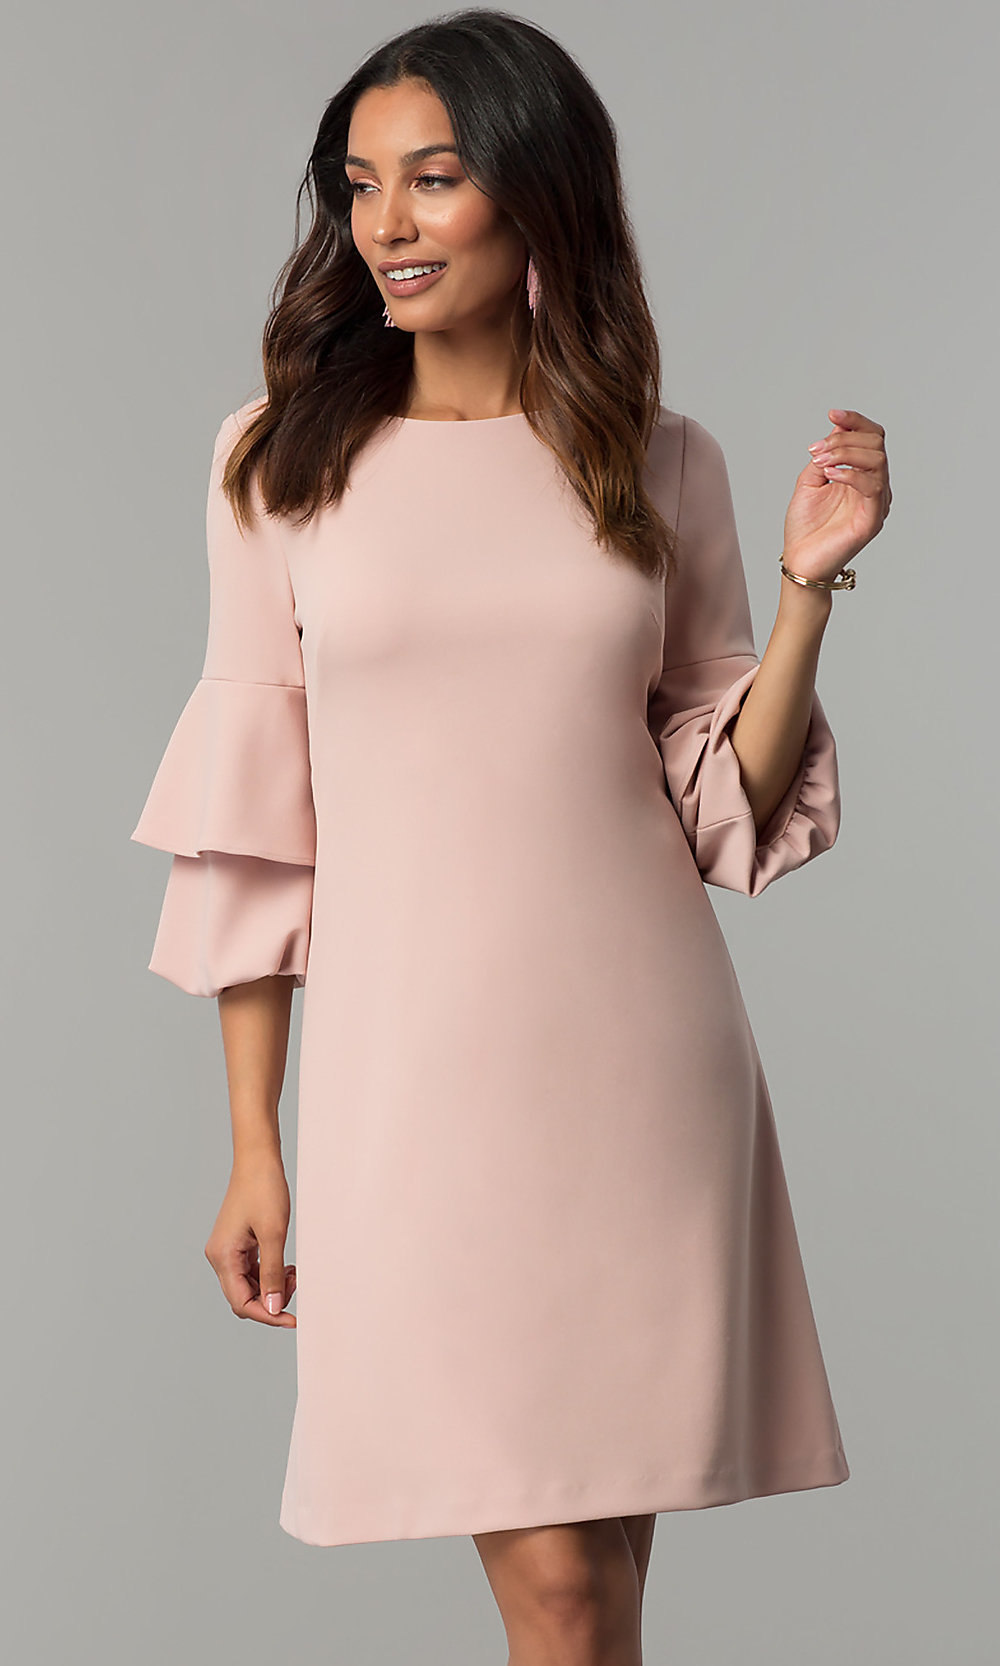 Wedding-Guest Shift Dress with Sleeves